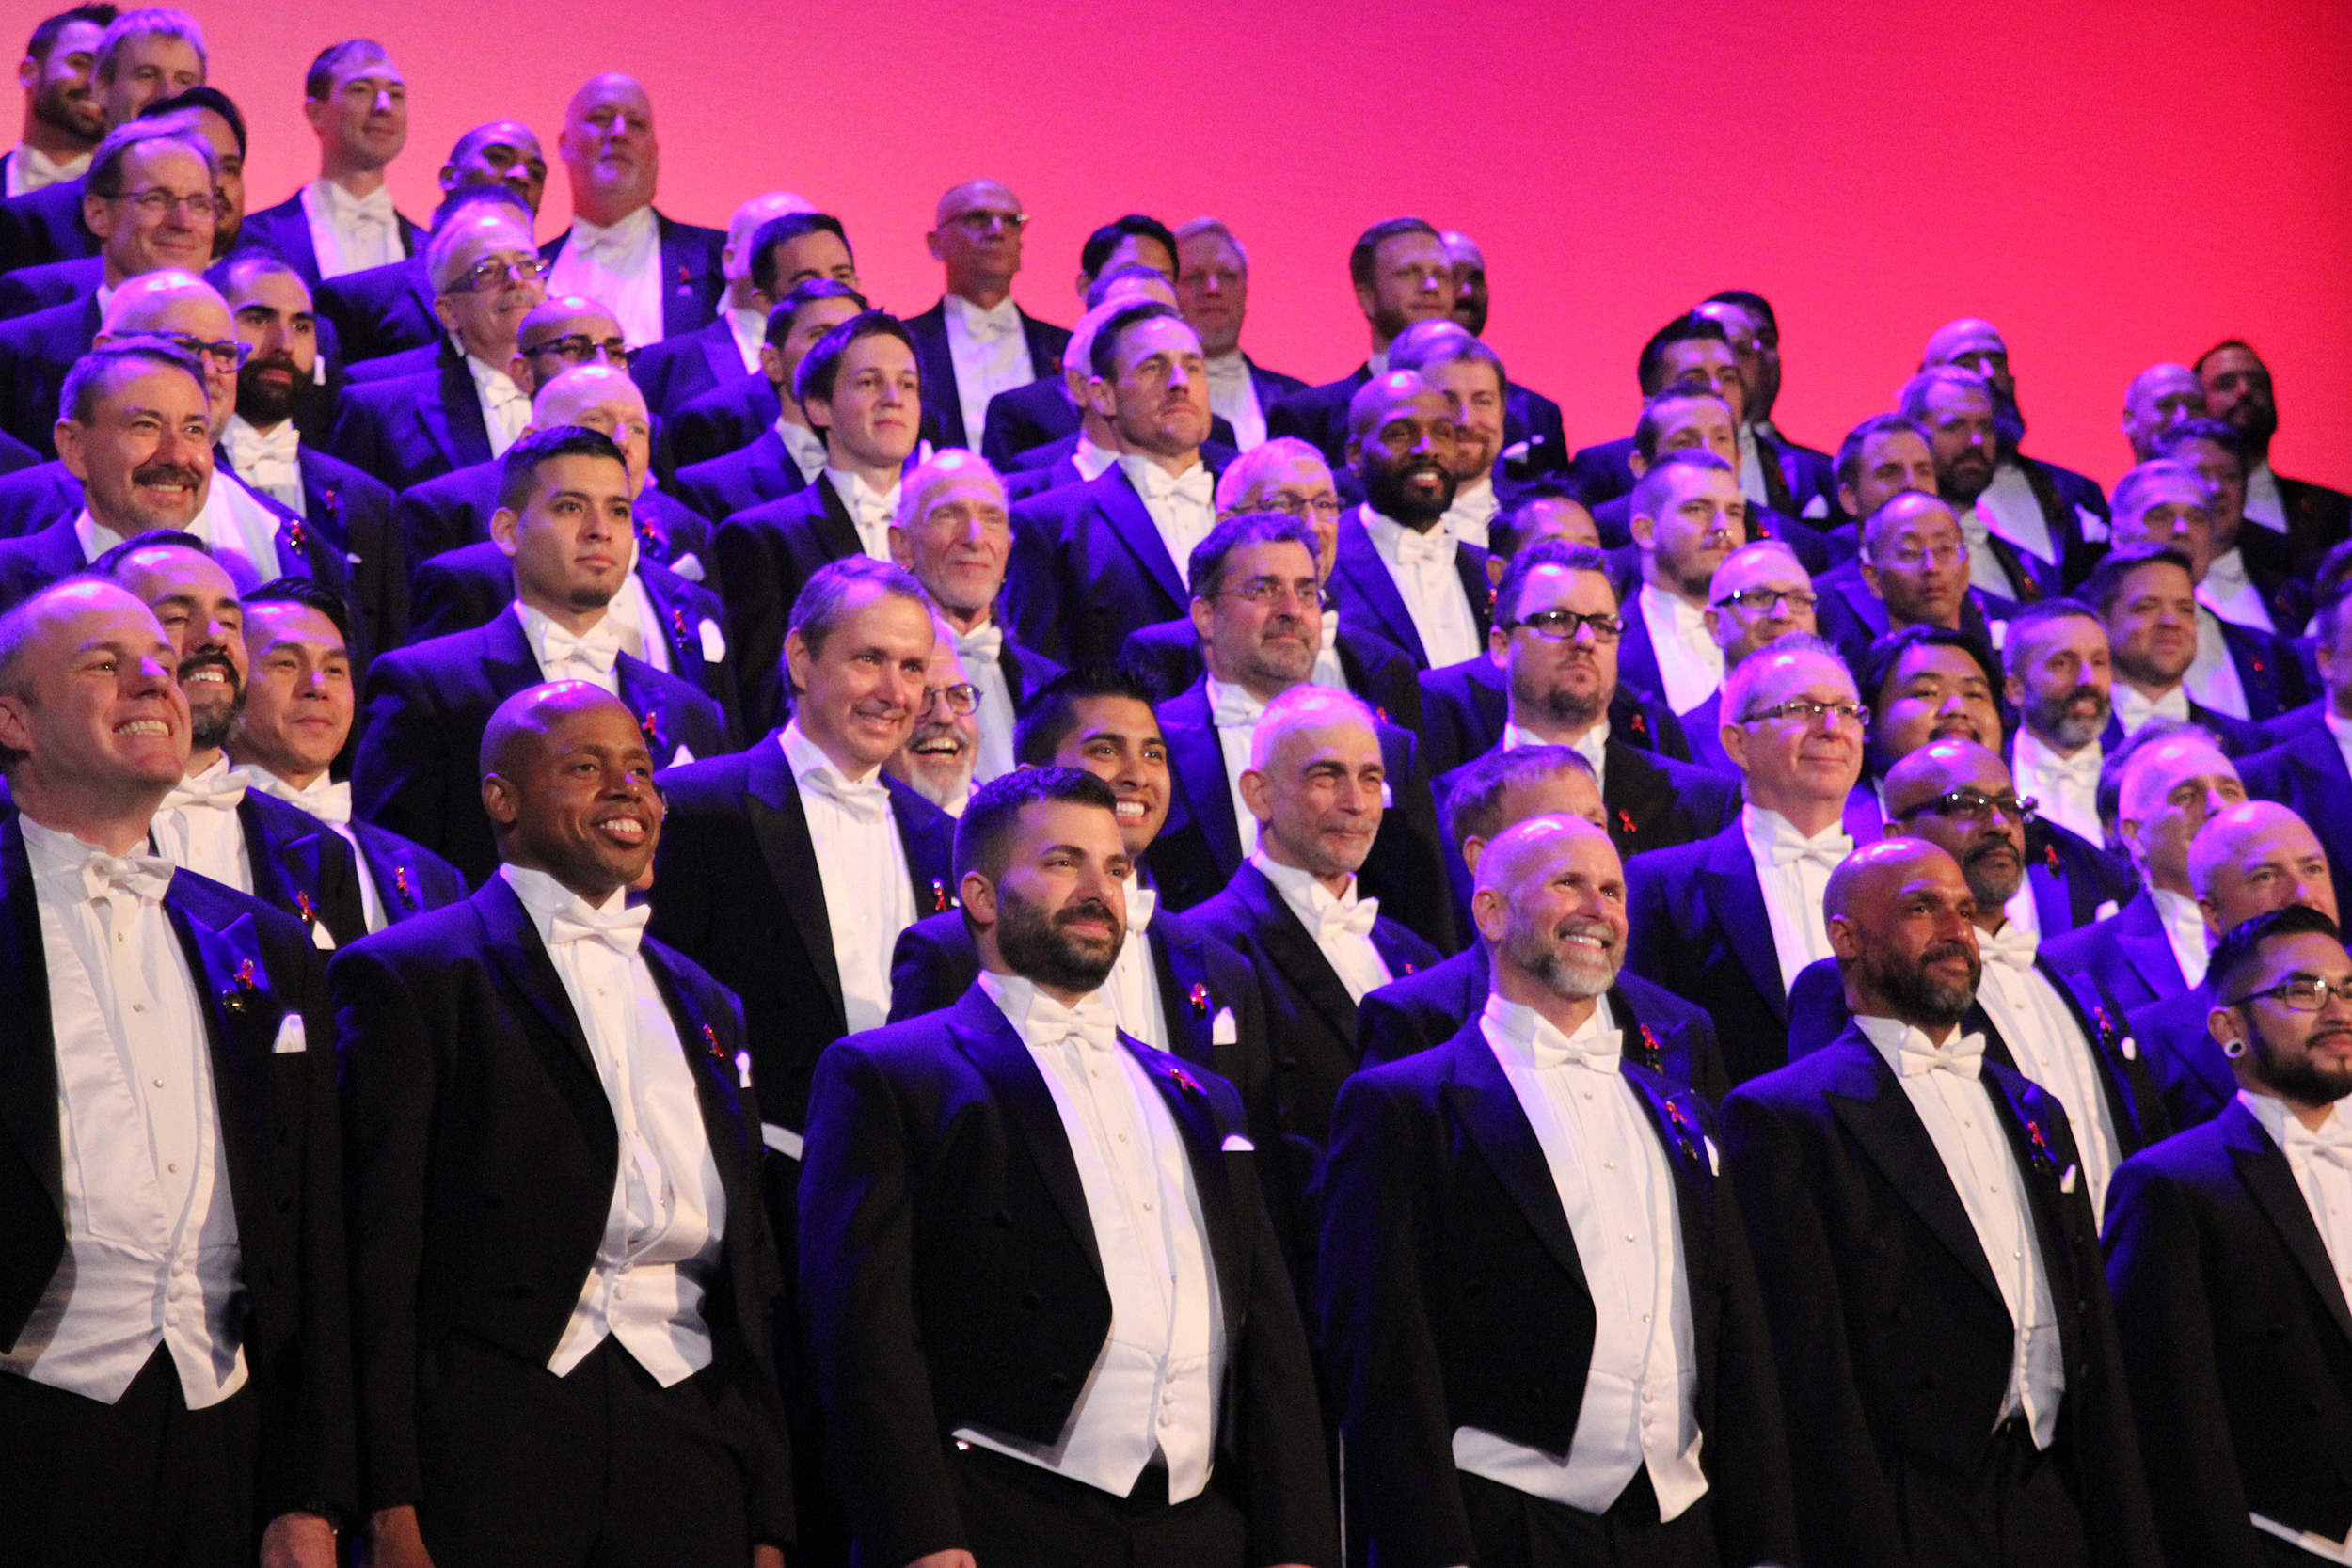 'Stellar' Support Outranks All the Rest - A CUSTOMER SUCCESS STORY WITH THE SAN FRANCISCO GAY MEN'S CHORUS